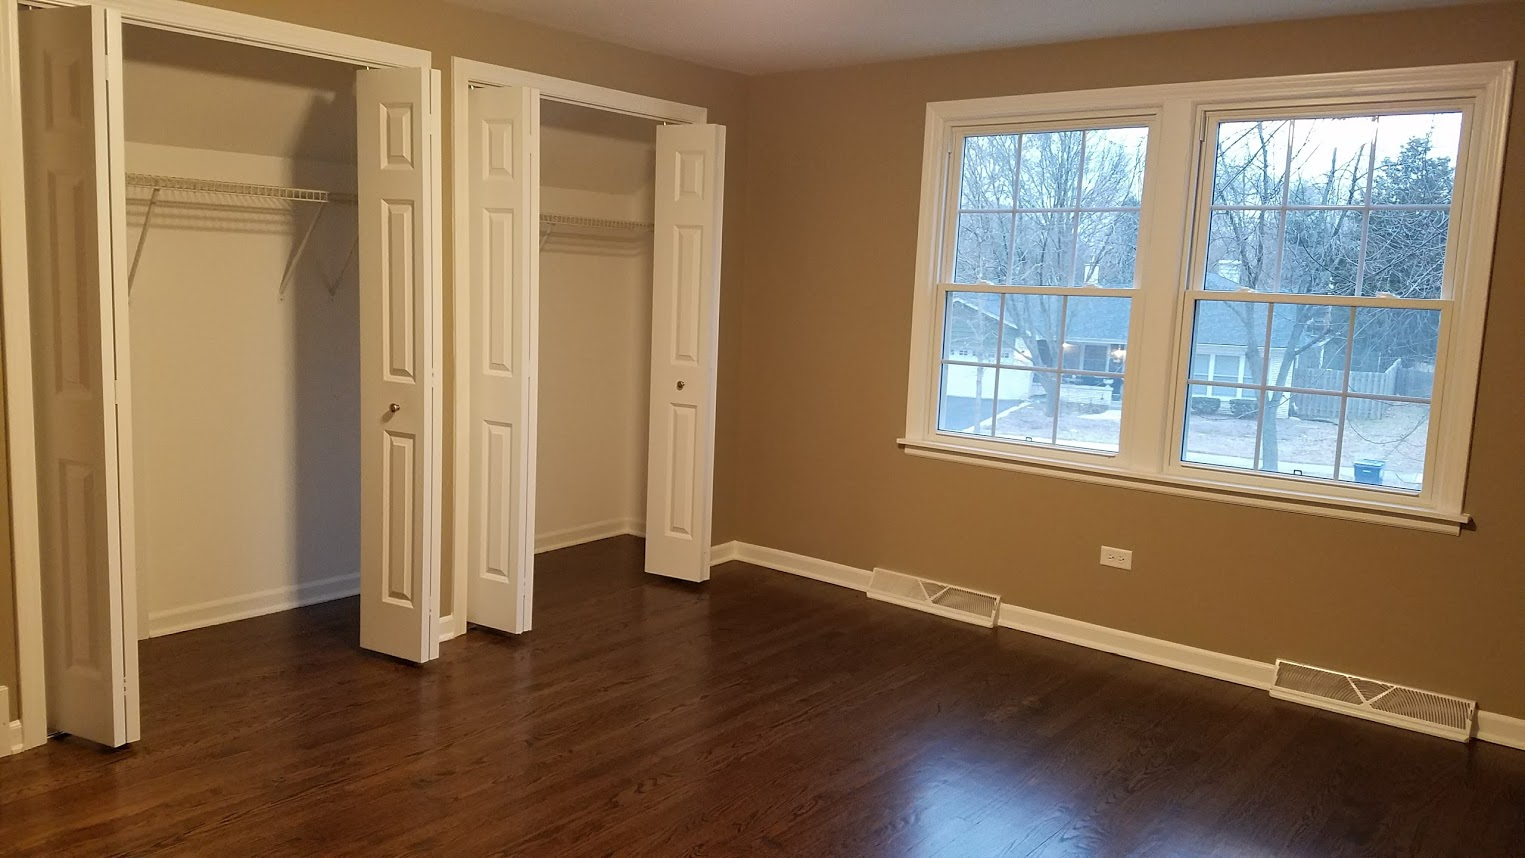 Bedroom Remodeling remodeling project built by Kure Construction in Naperville, IL.